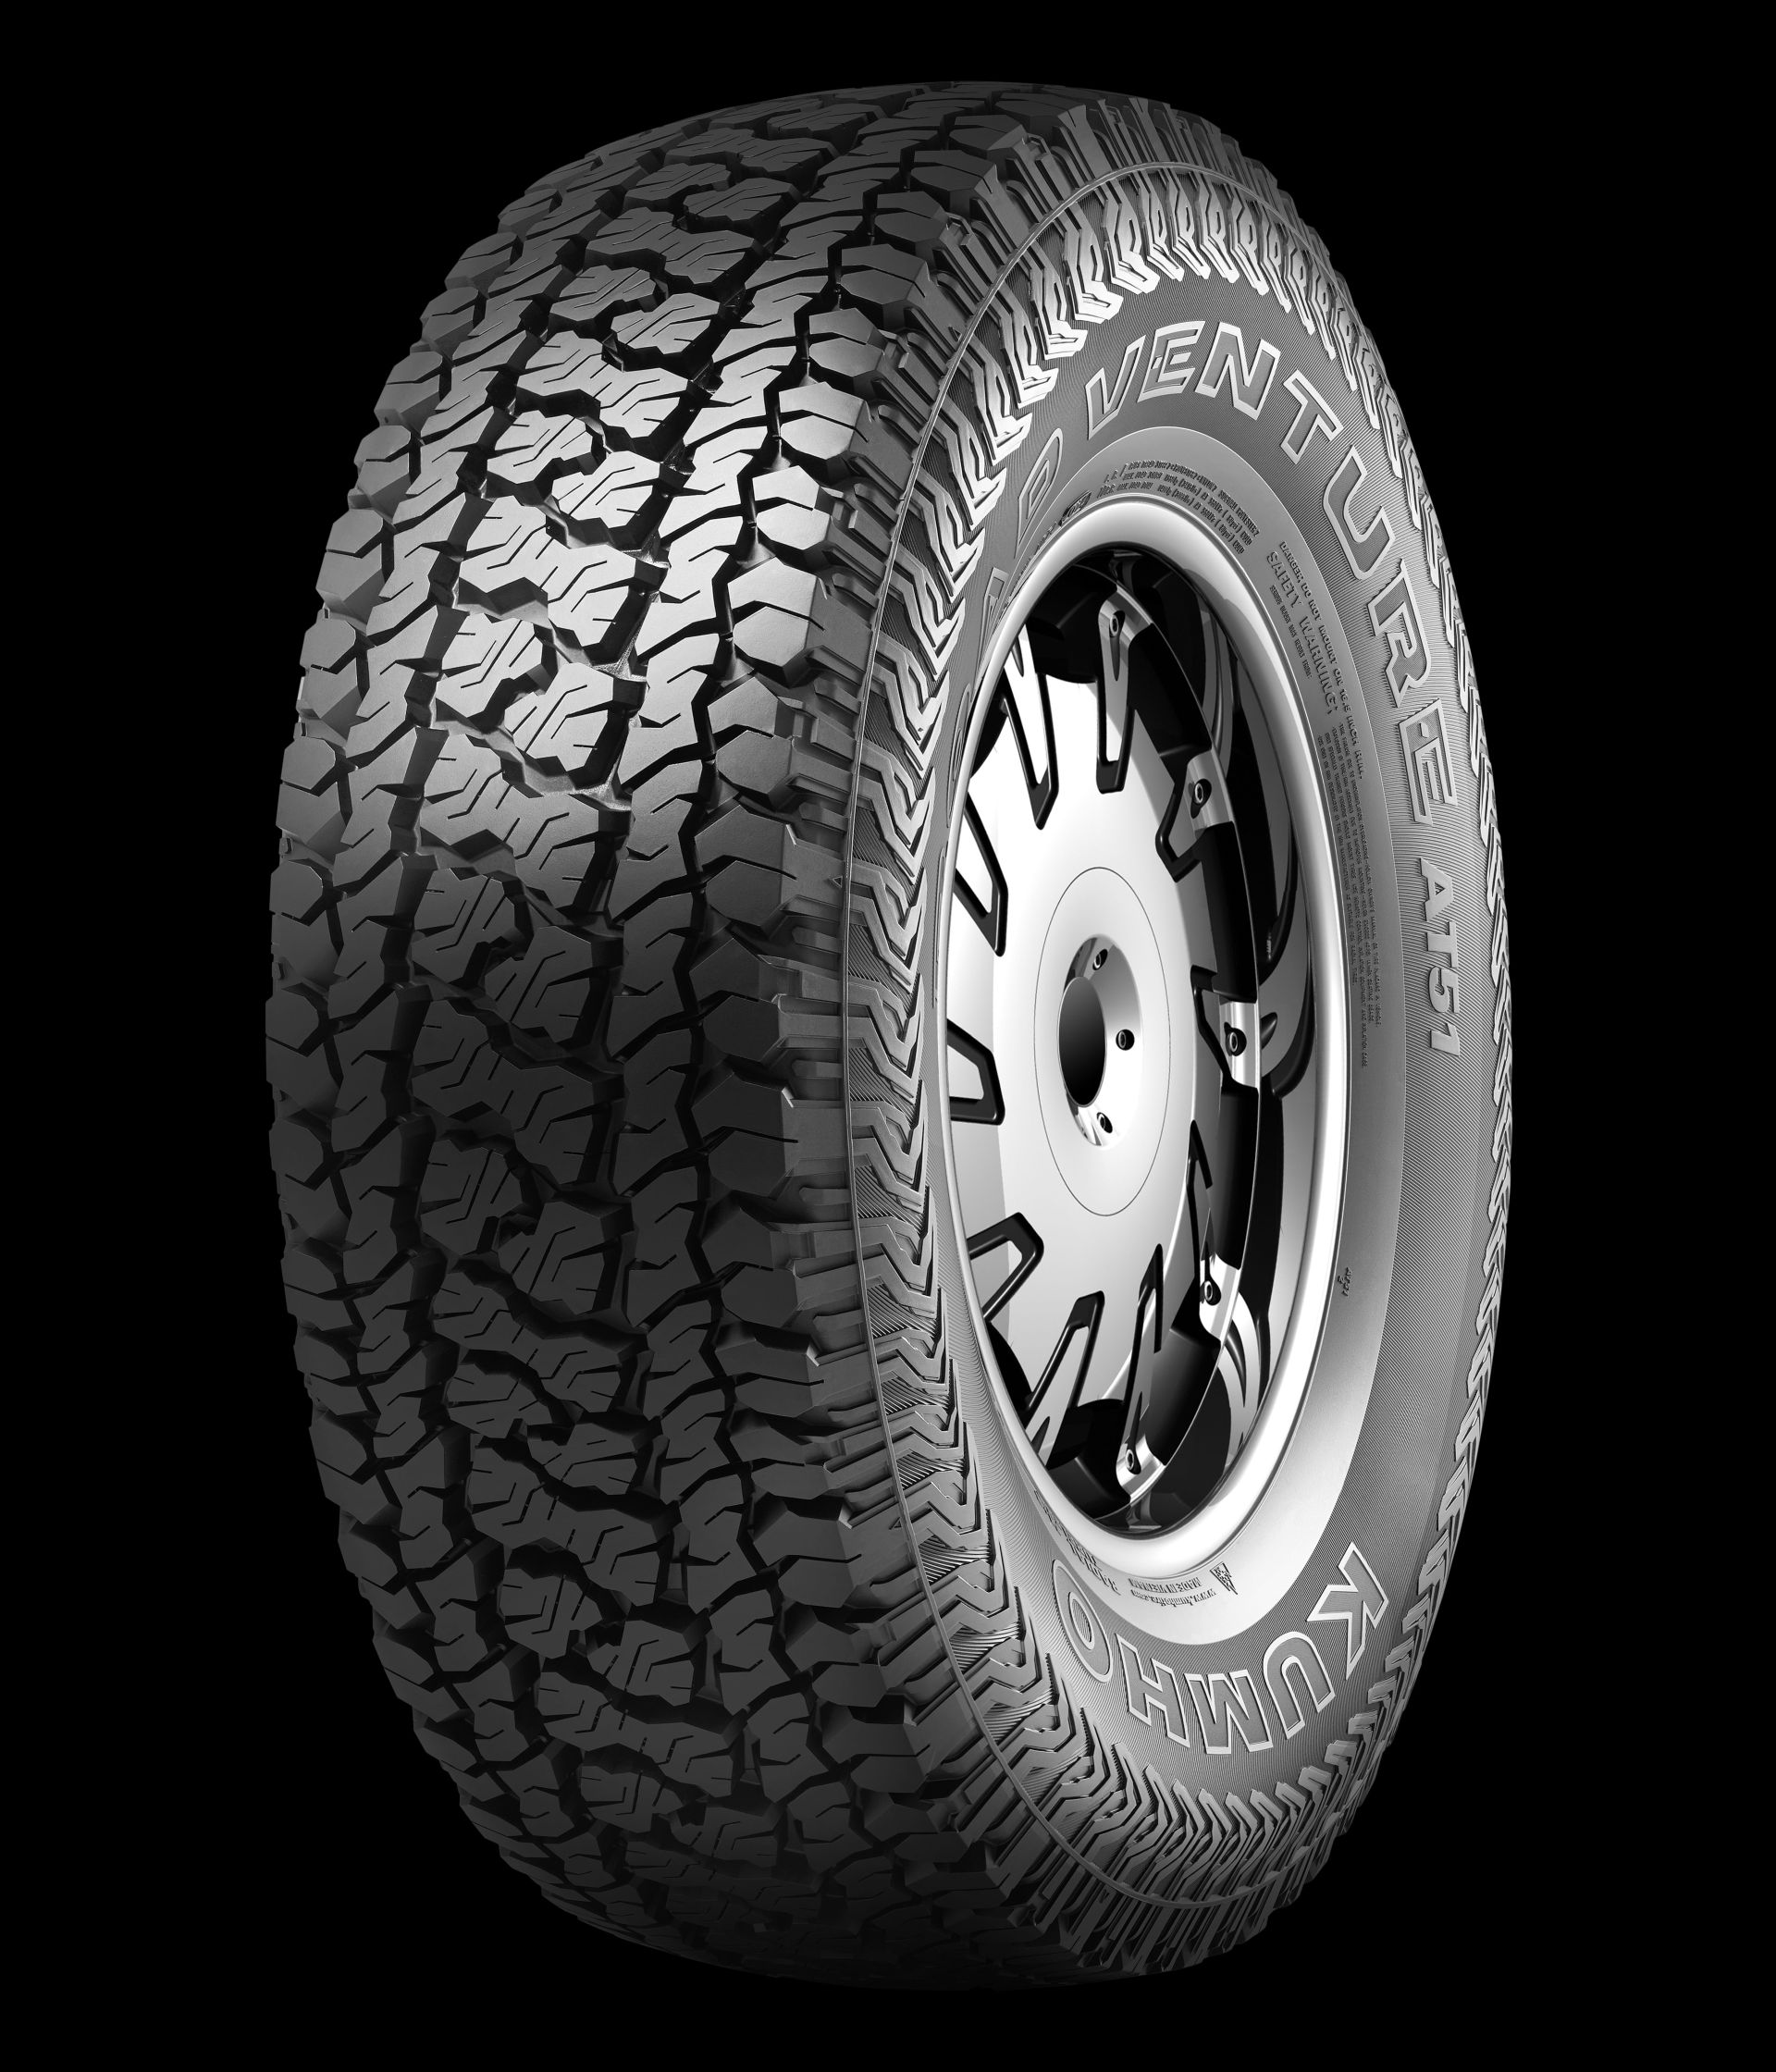 Kumho Road Venture AT51 Is Available in 43 Sizes